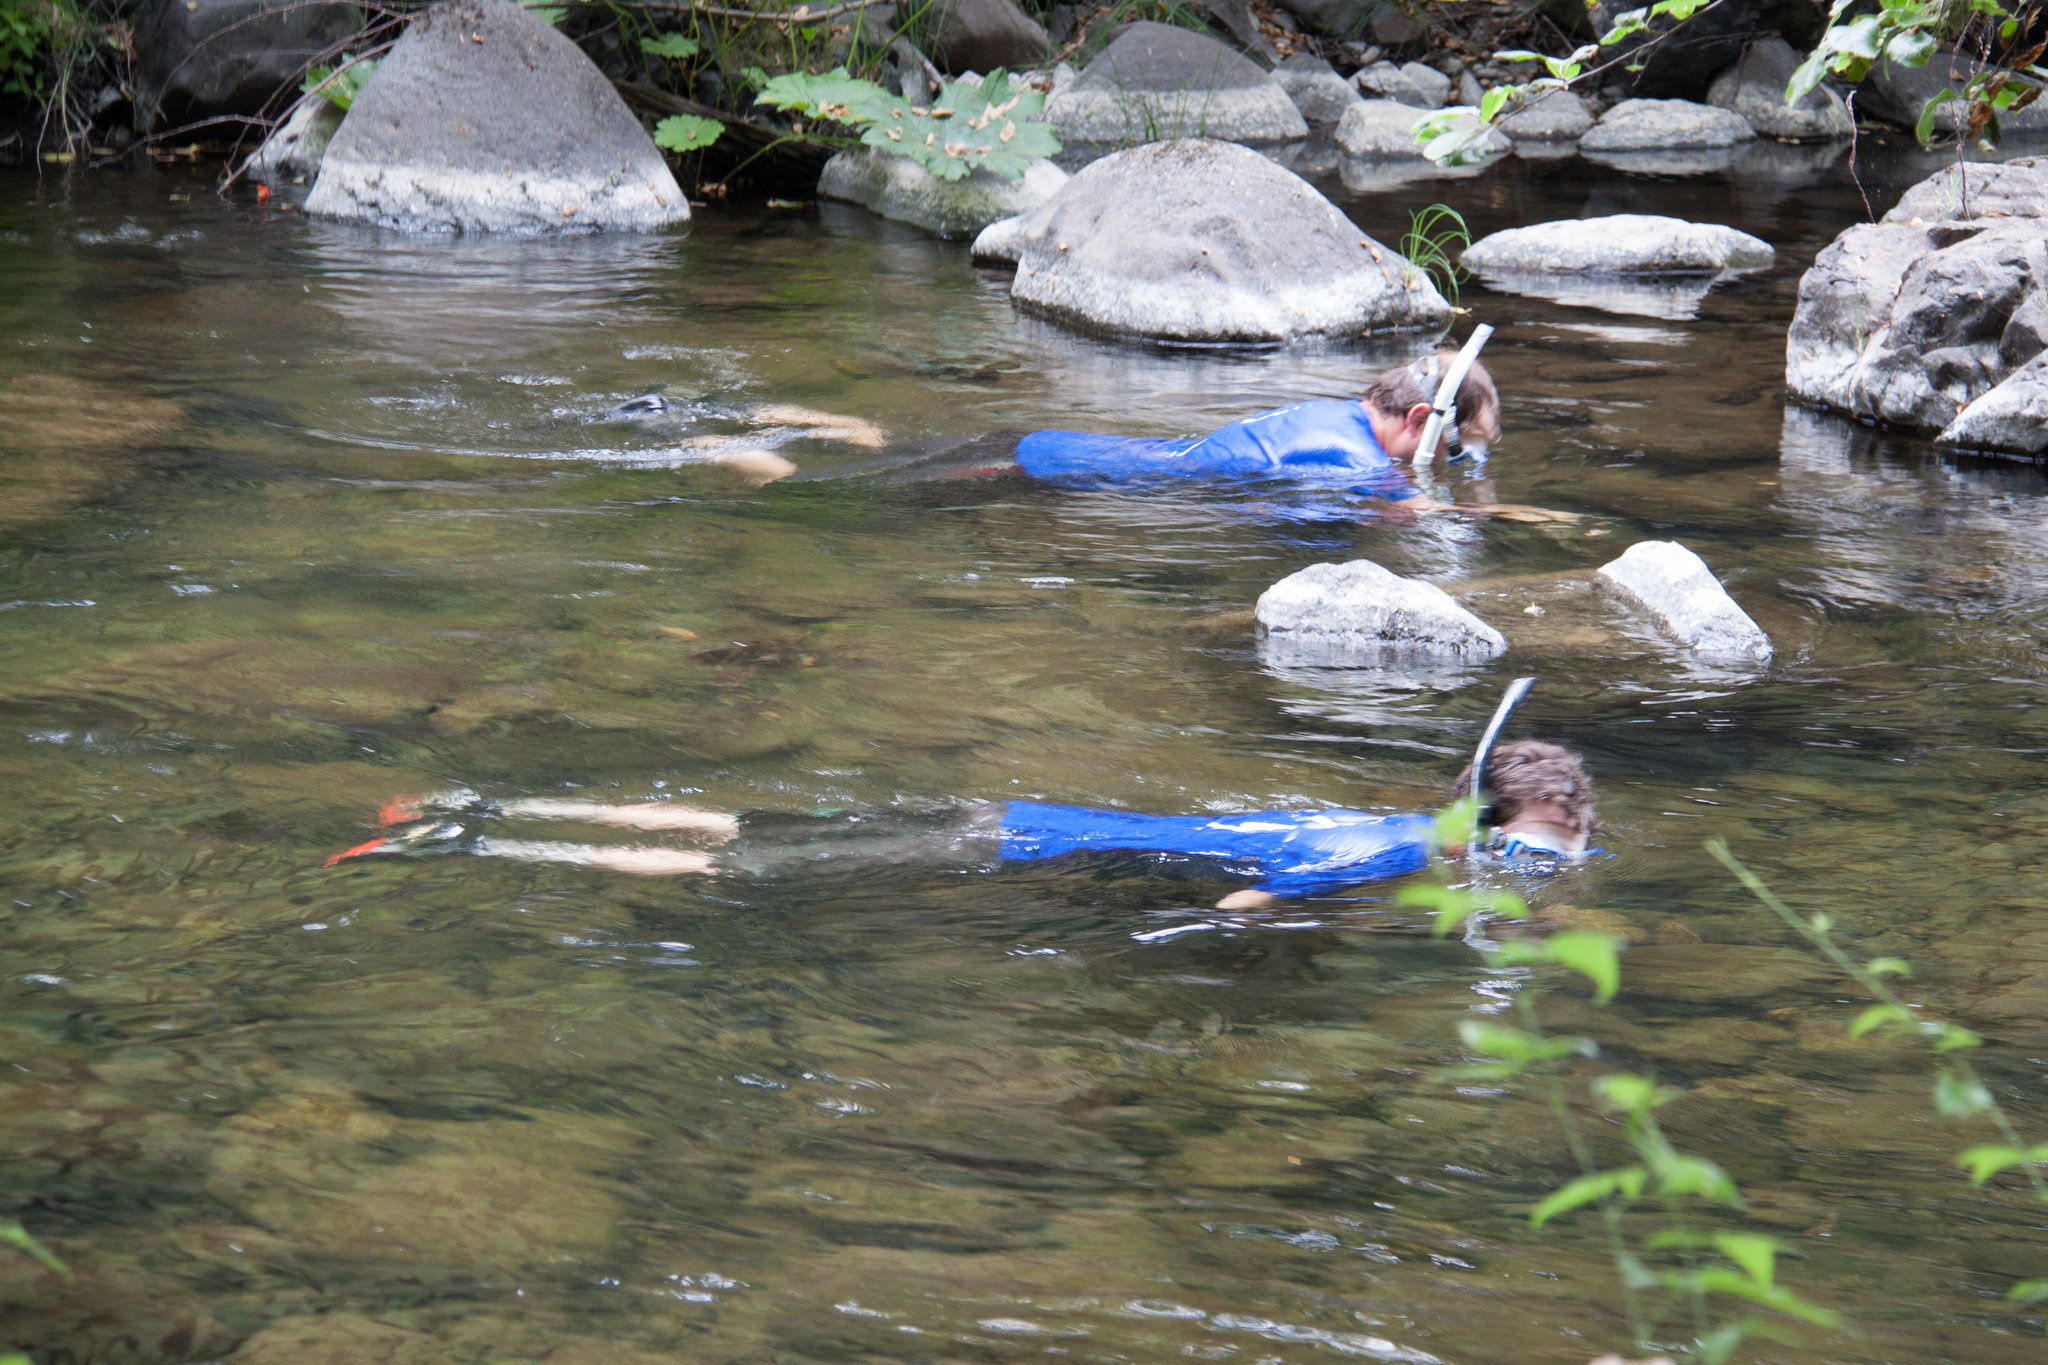 Snorkelers in sync on Big Chico Creek